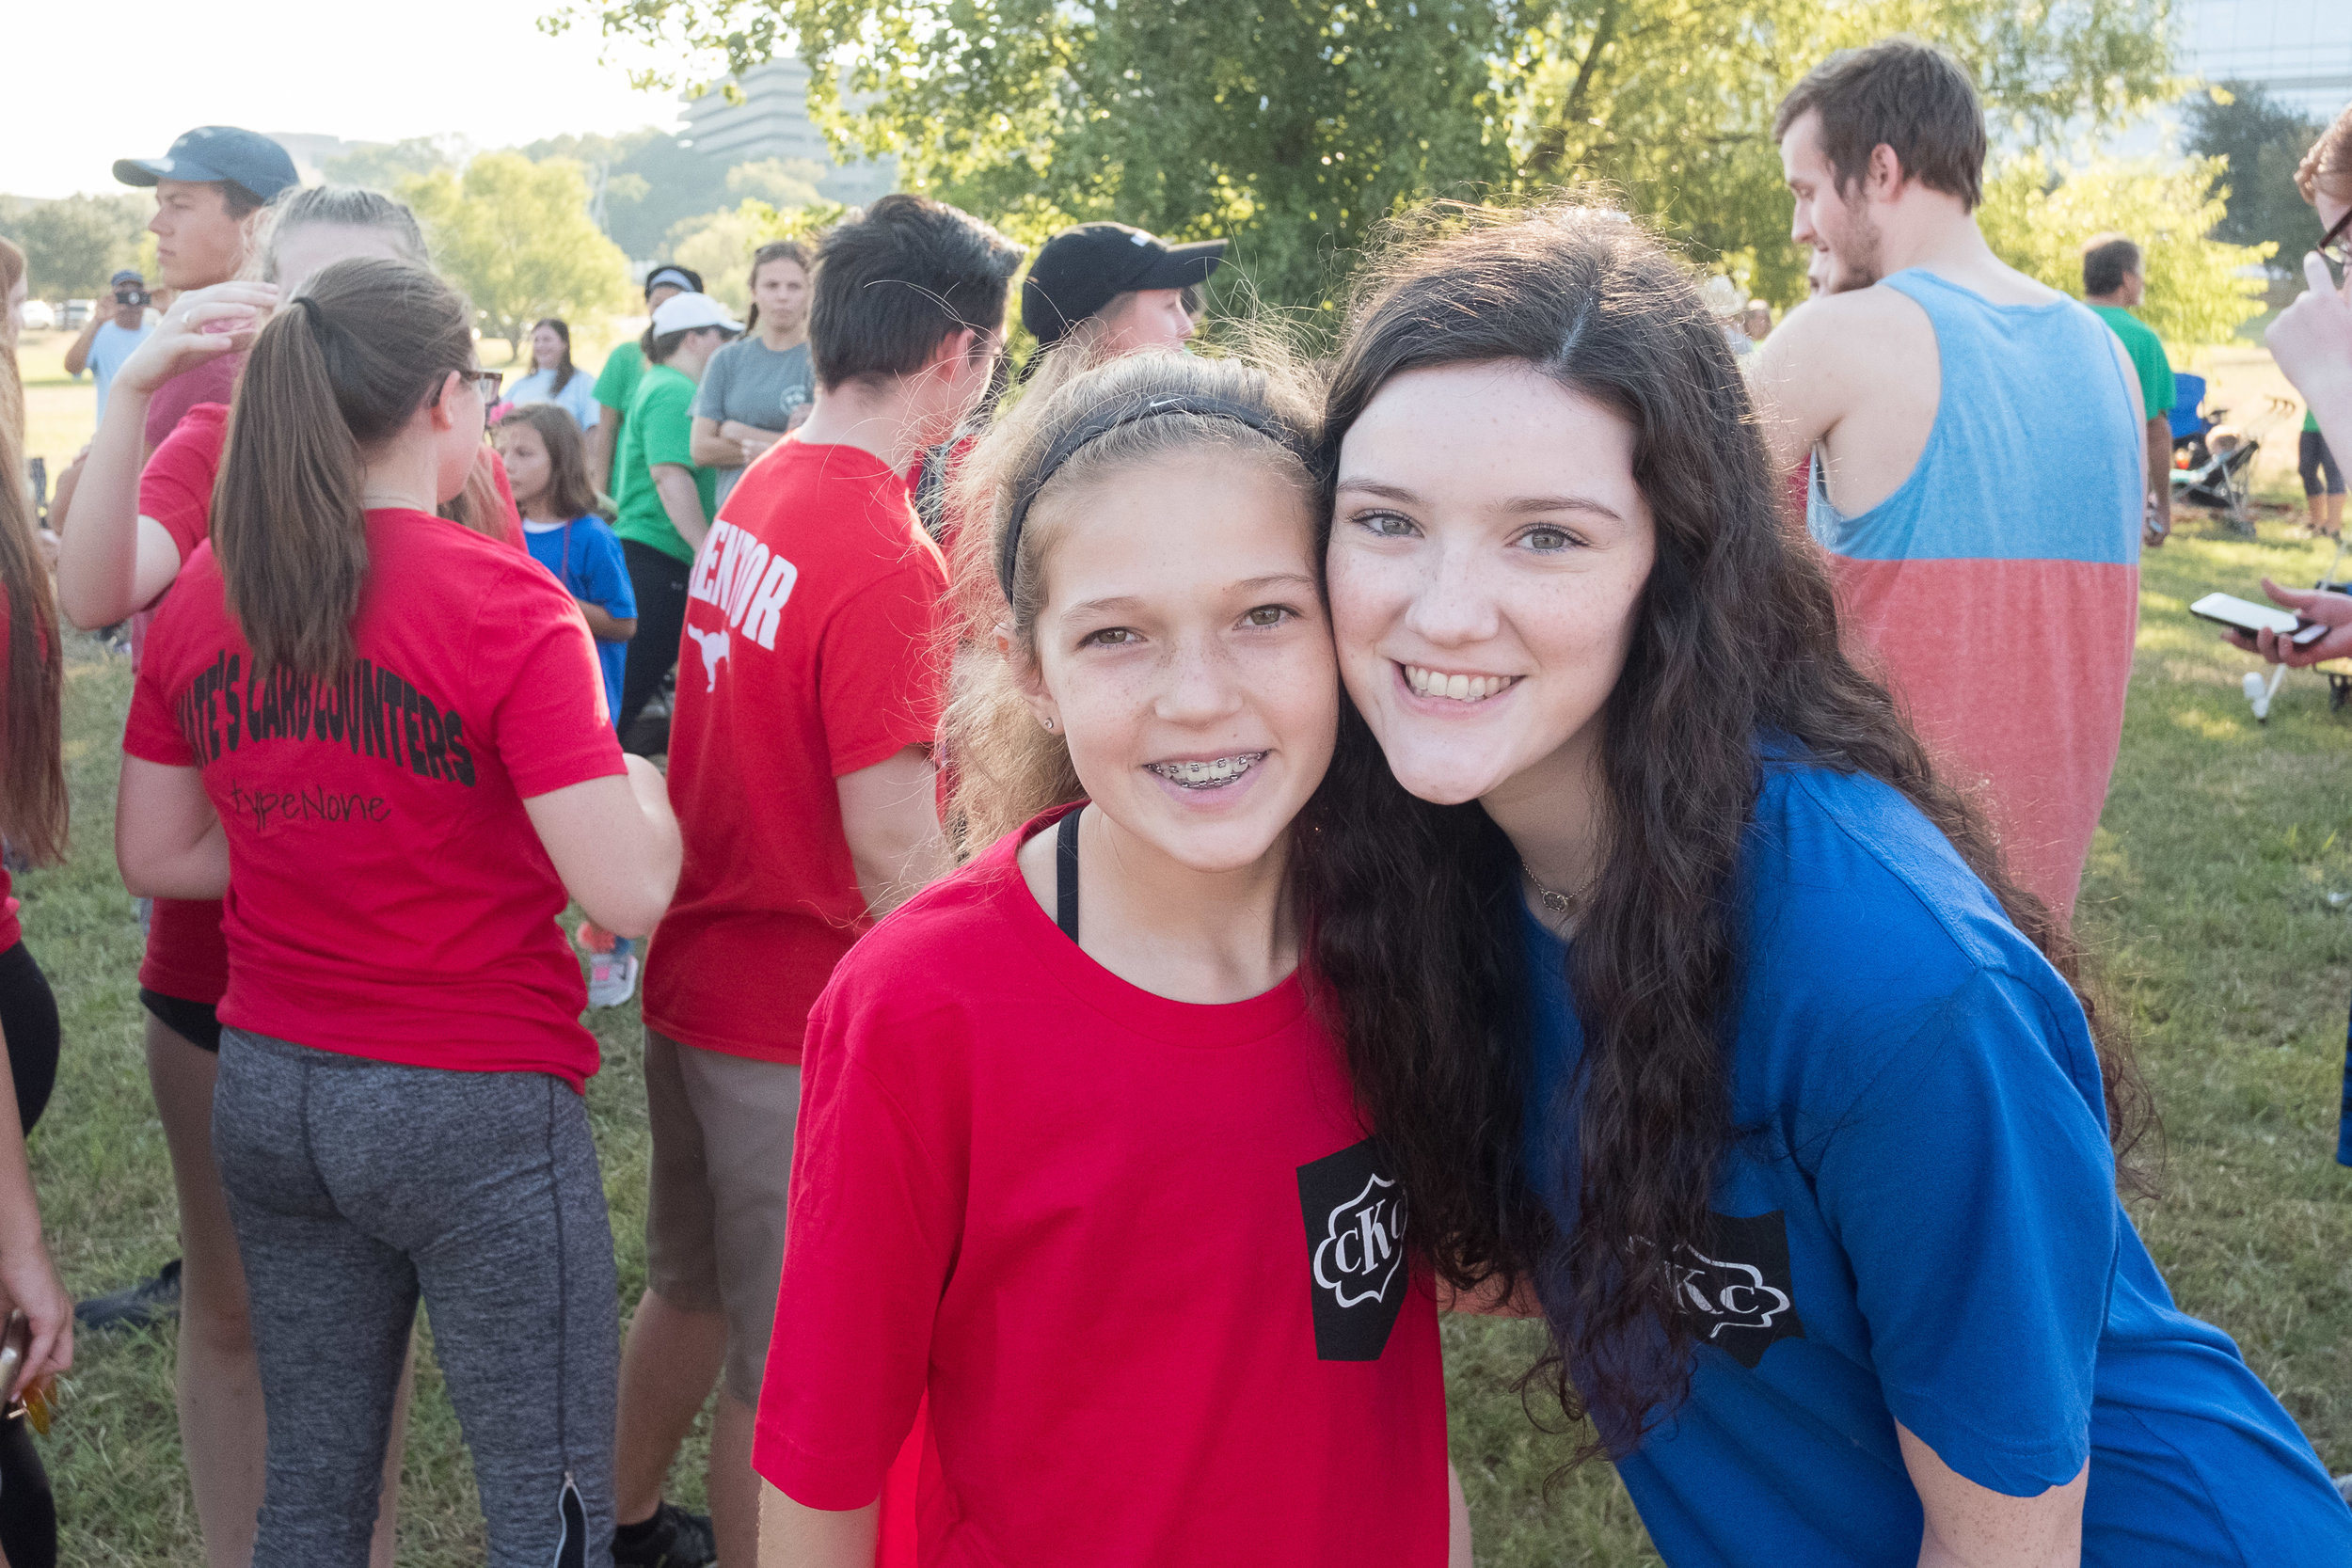 Supporting Kate at the Annual JDRF Fundraising Walk